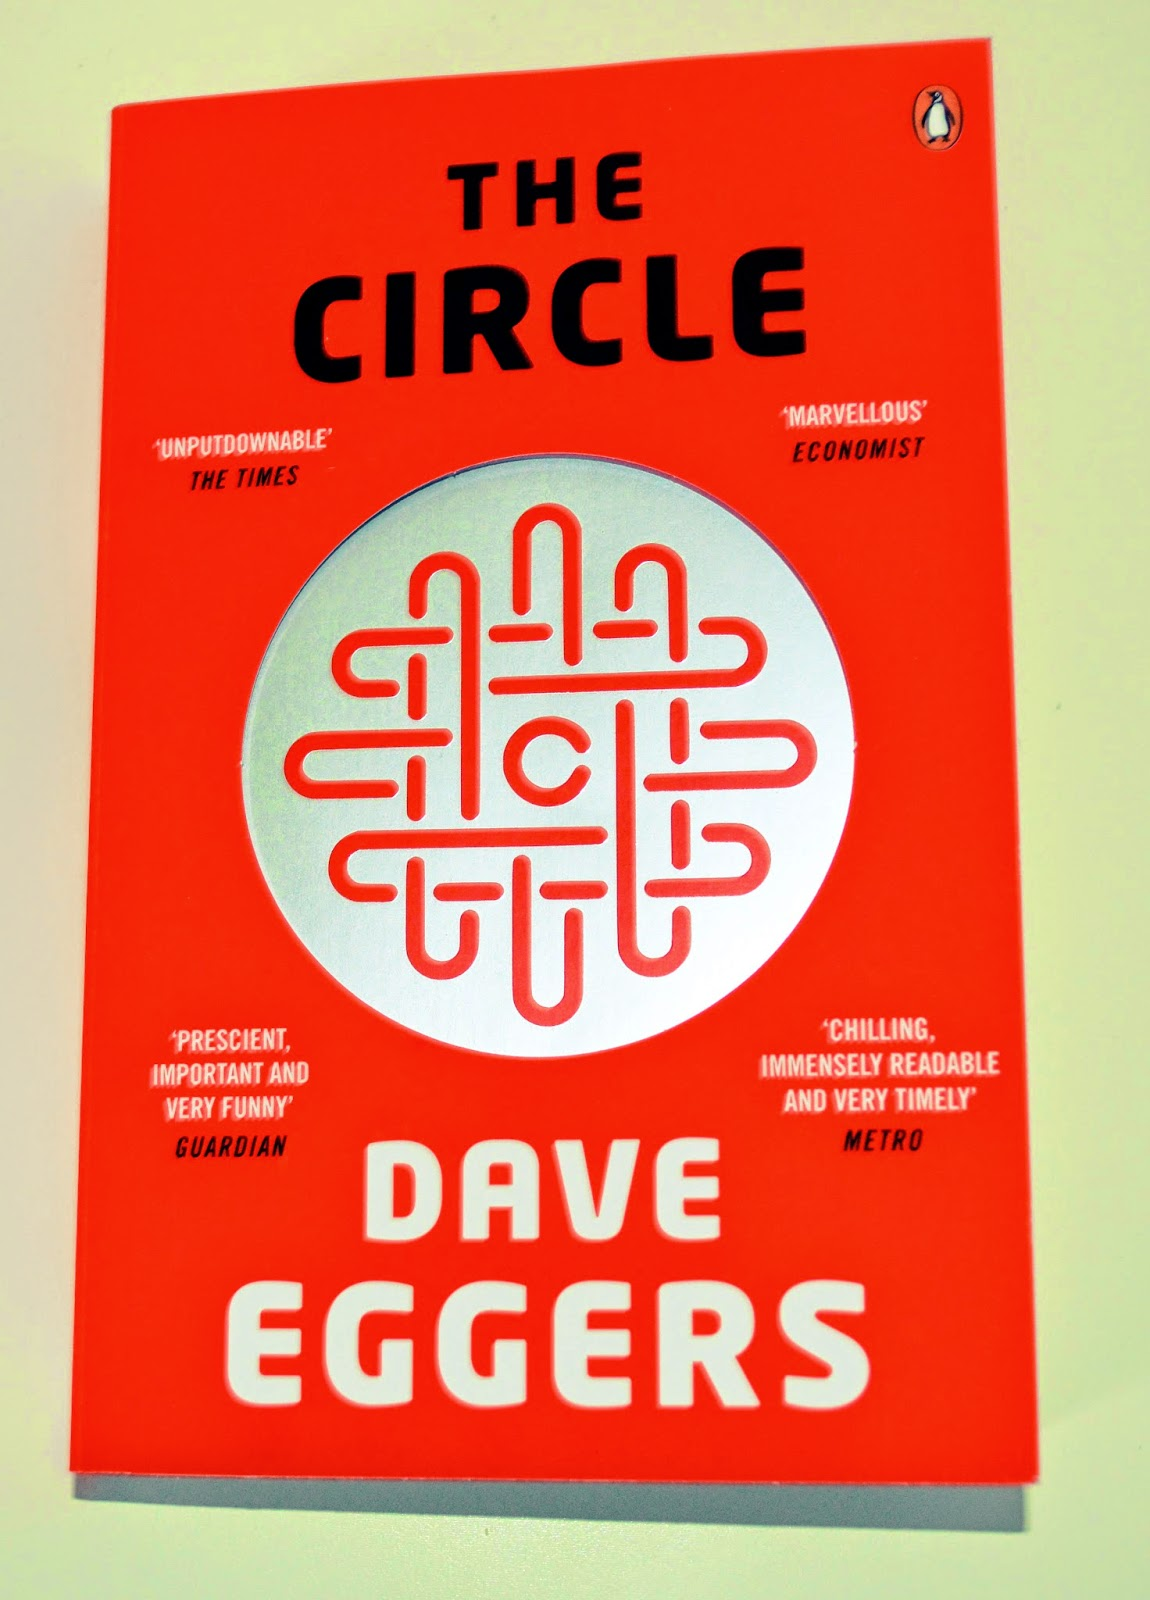 Dave Eggers, The Circle, paperback, review, UK edition, book cover, photograph, photo